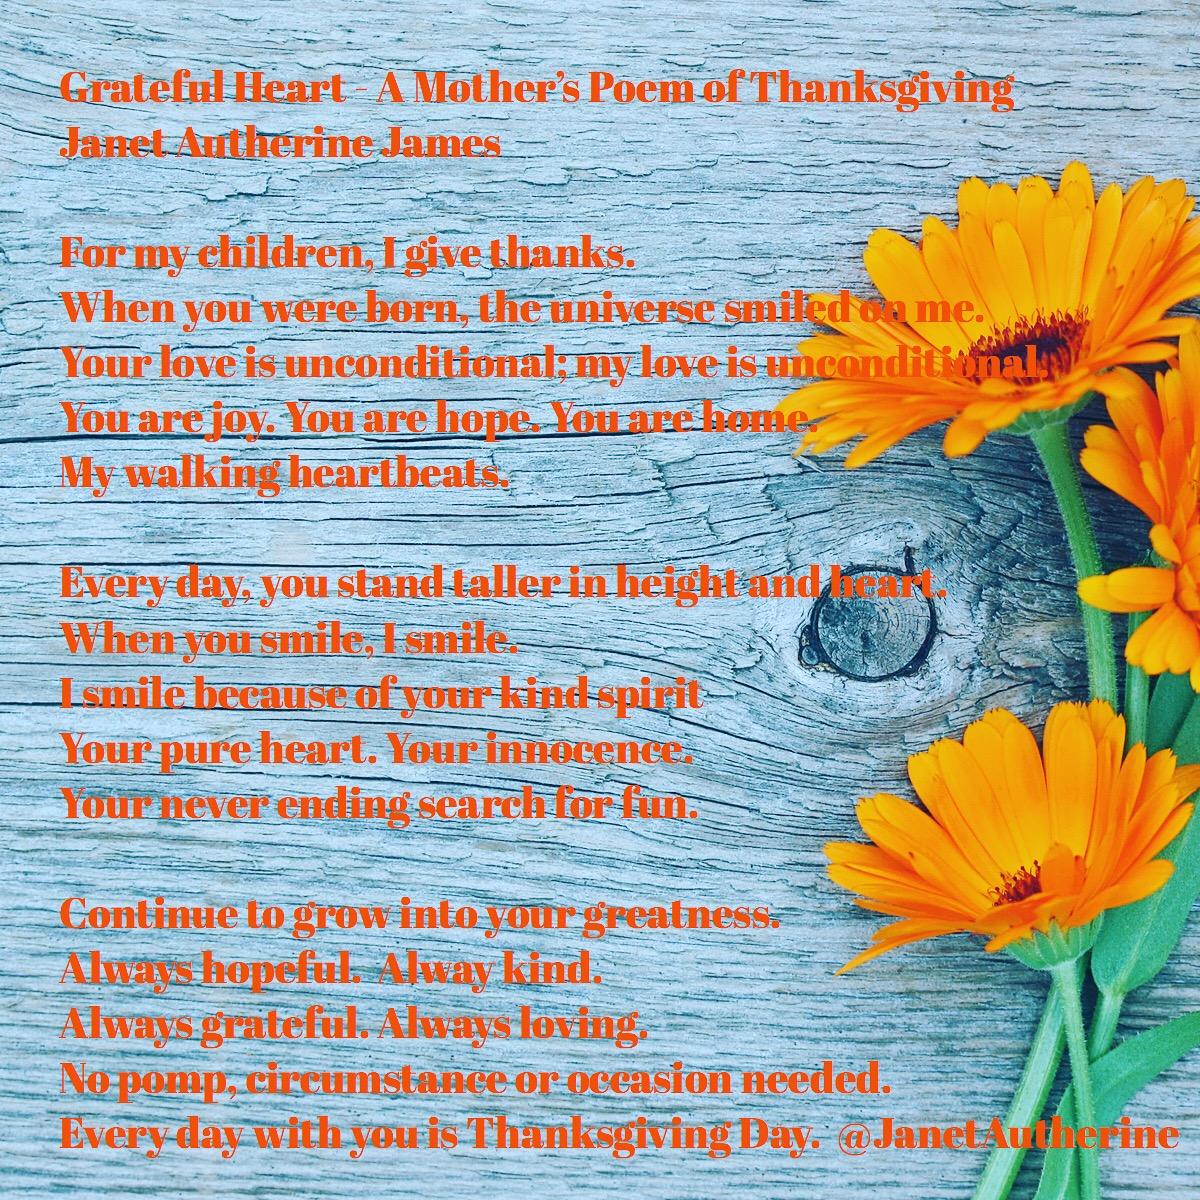 A Mother's Poem of Thanksgiving